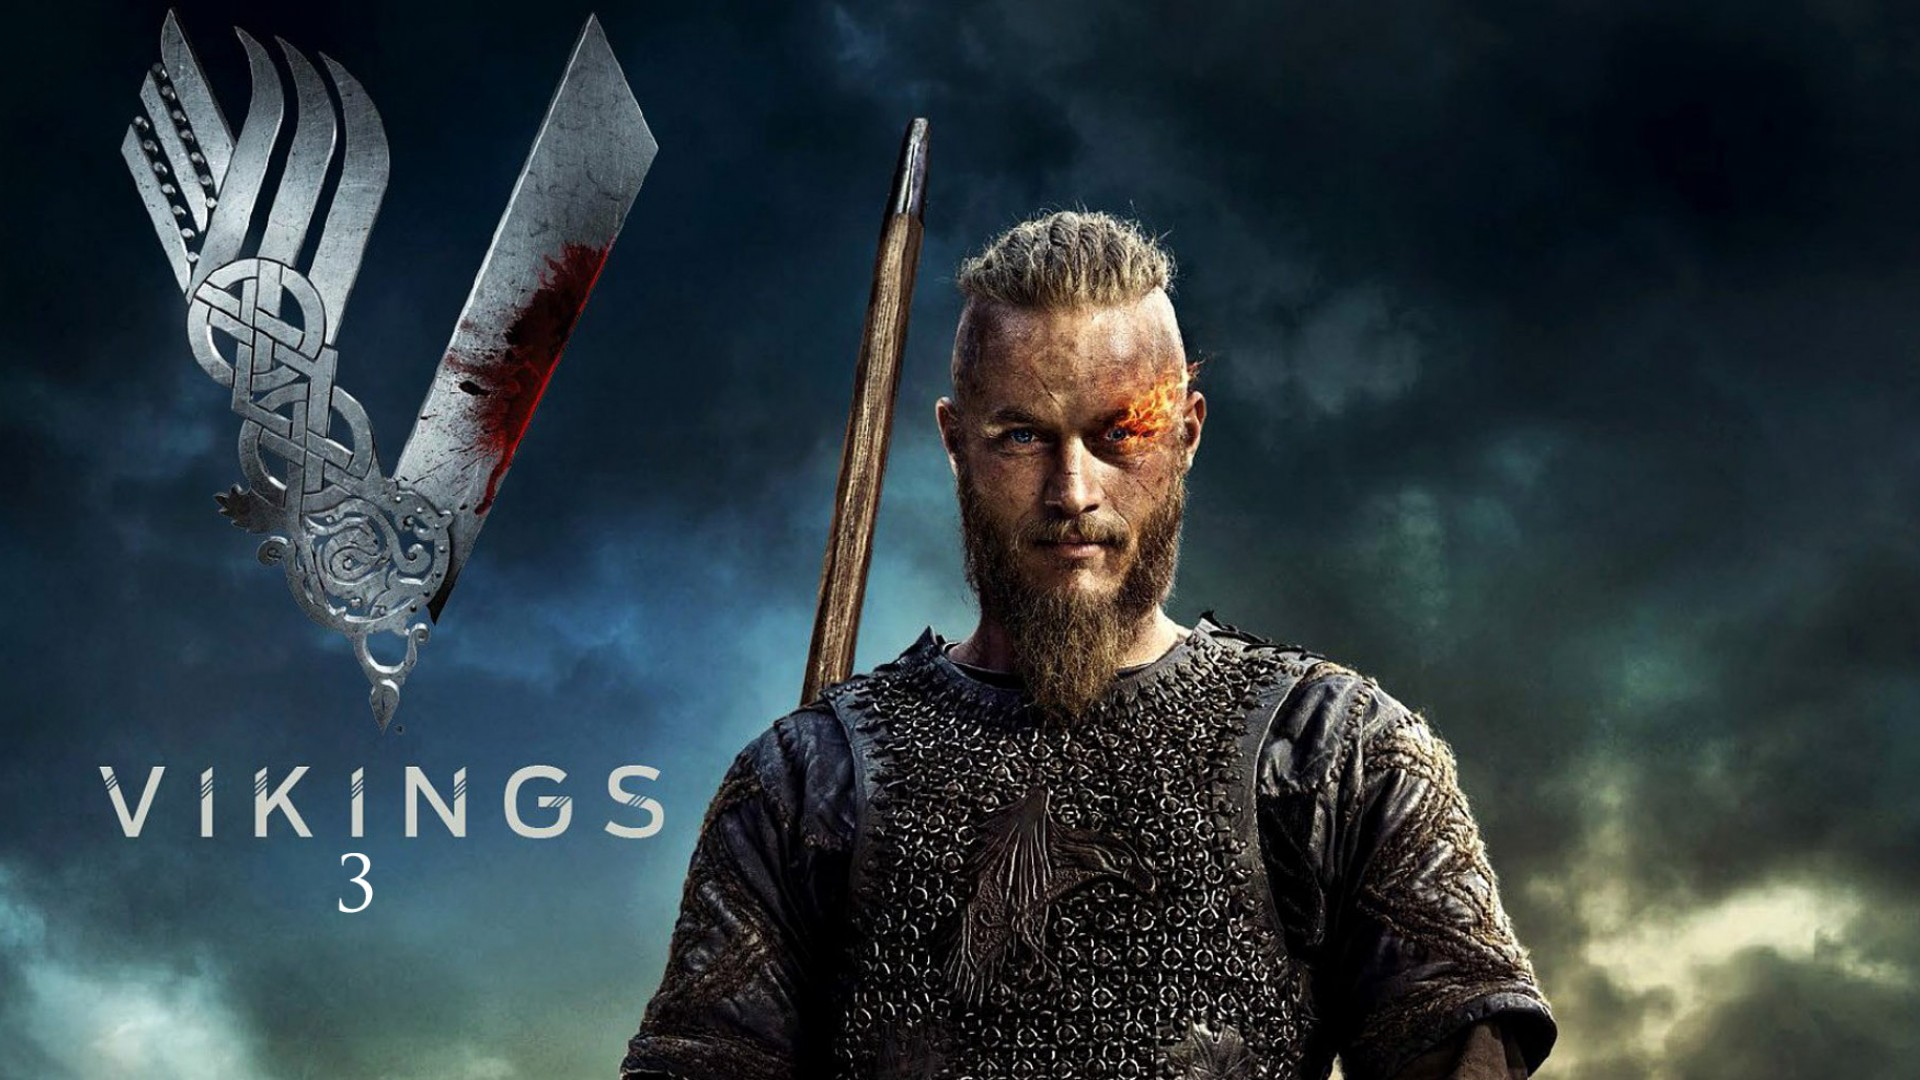 Vikings iphone wallpaper tumblr - Download Ragnar Lothbrok In Vikings 3 Tv Series Hd Wallpaper Search